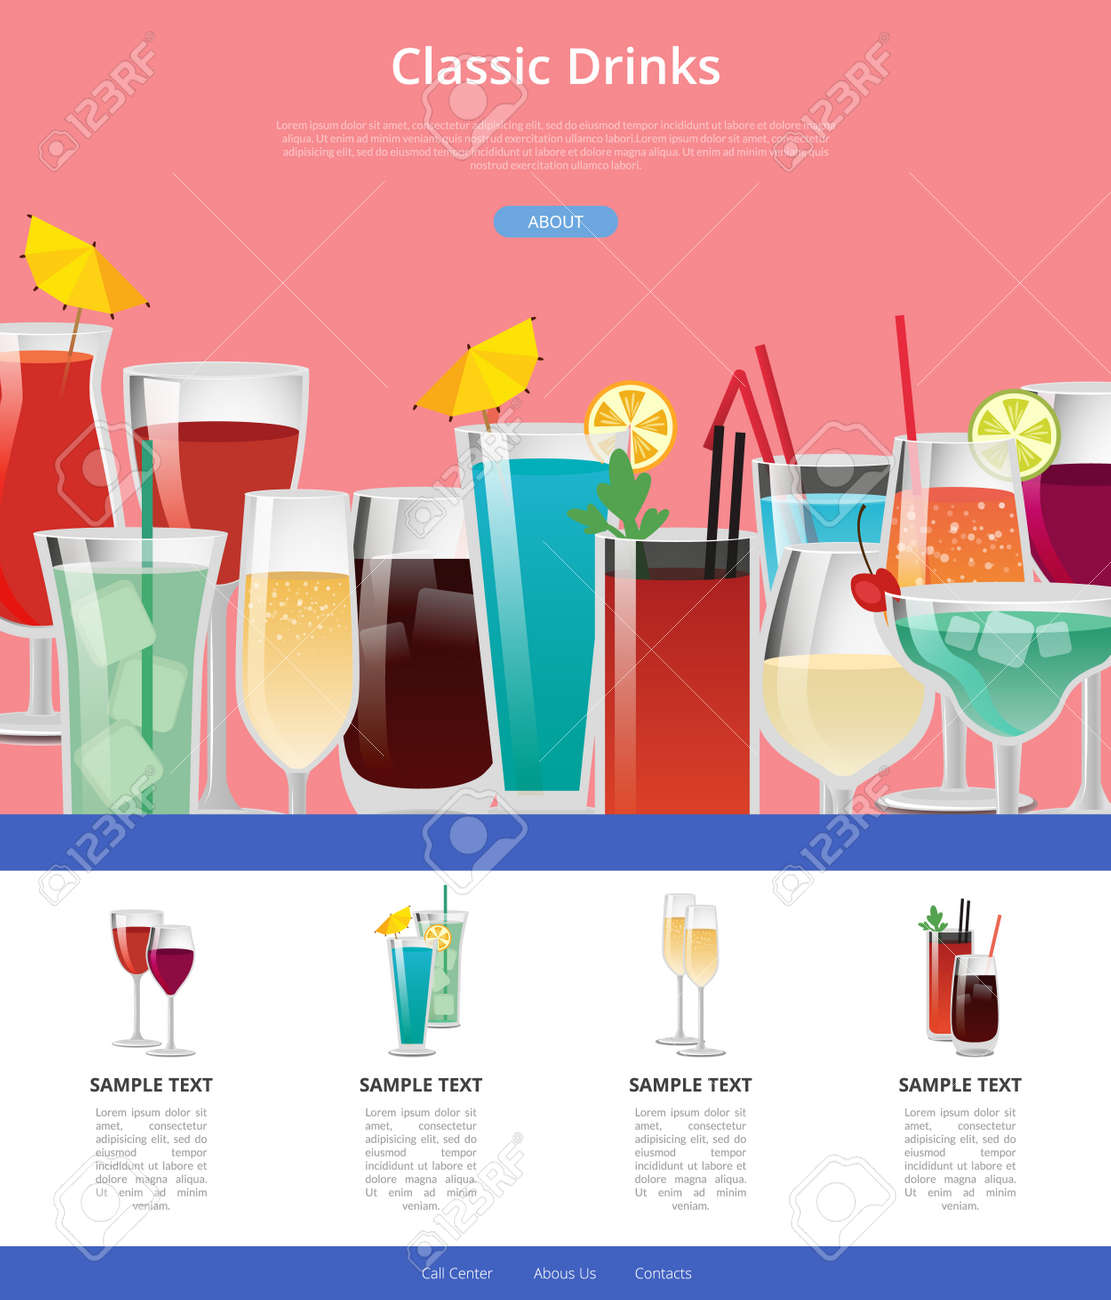 Classic Drinks Web Poster with Samples of Alcohol. - 91884465